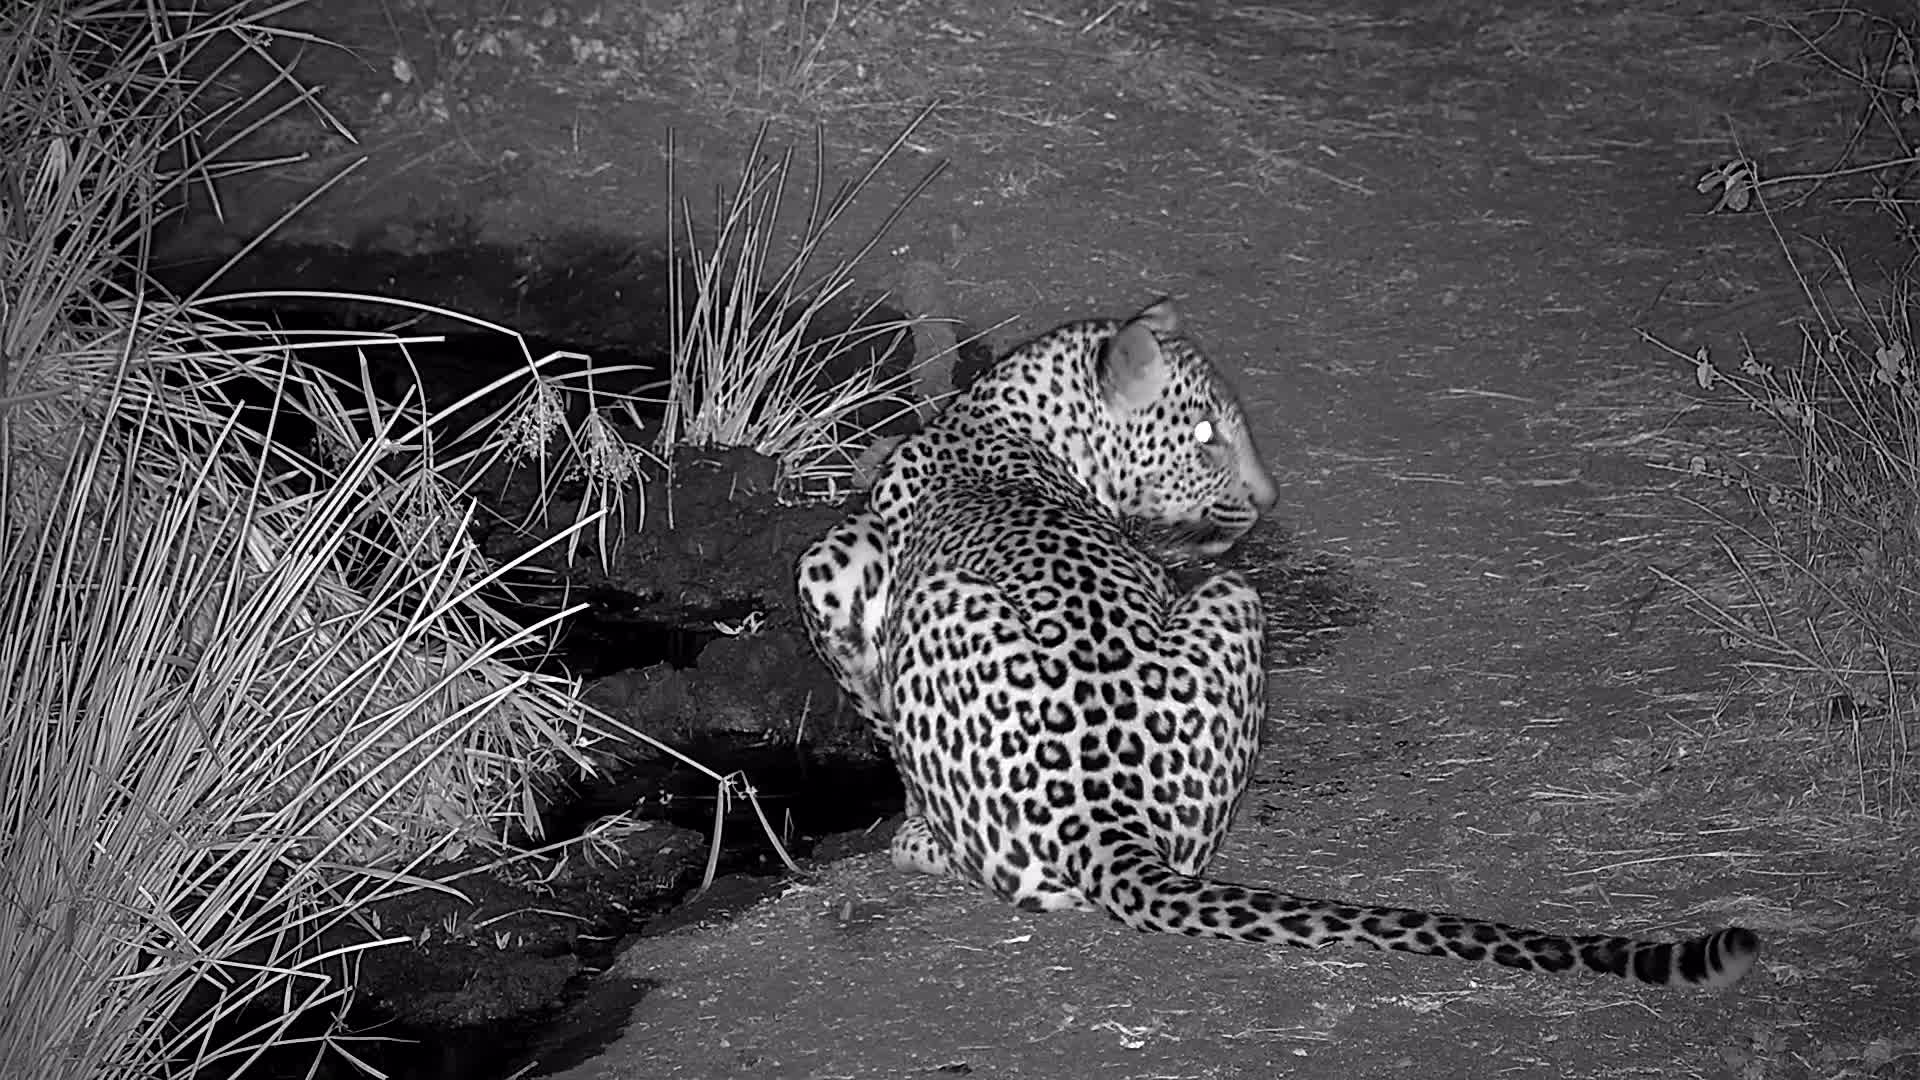 VIDEO:  Leopard drinking and you can hear it calling as it leaves.